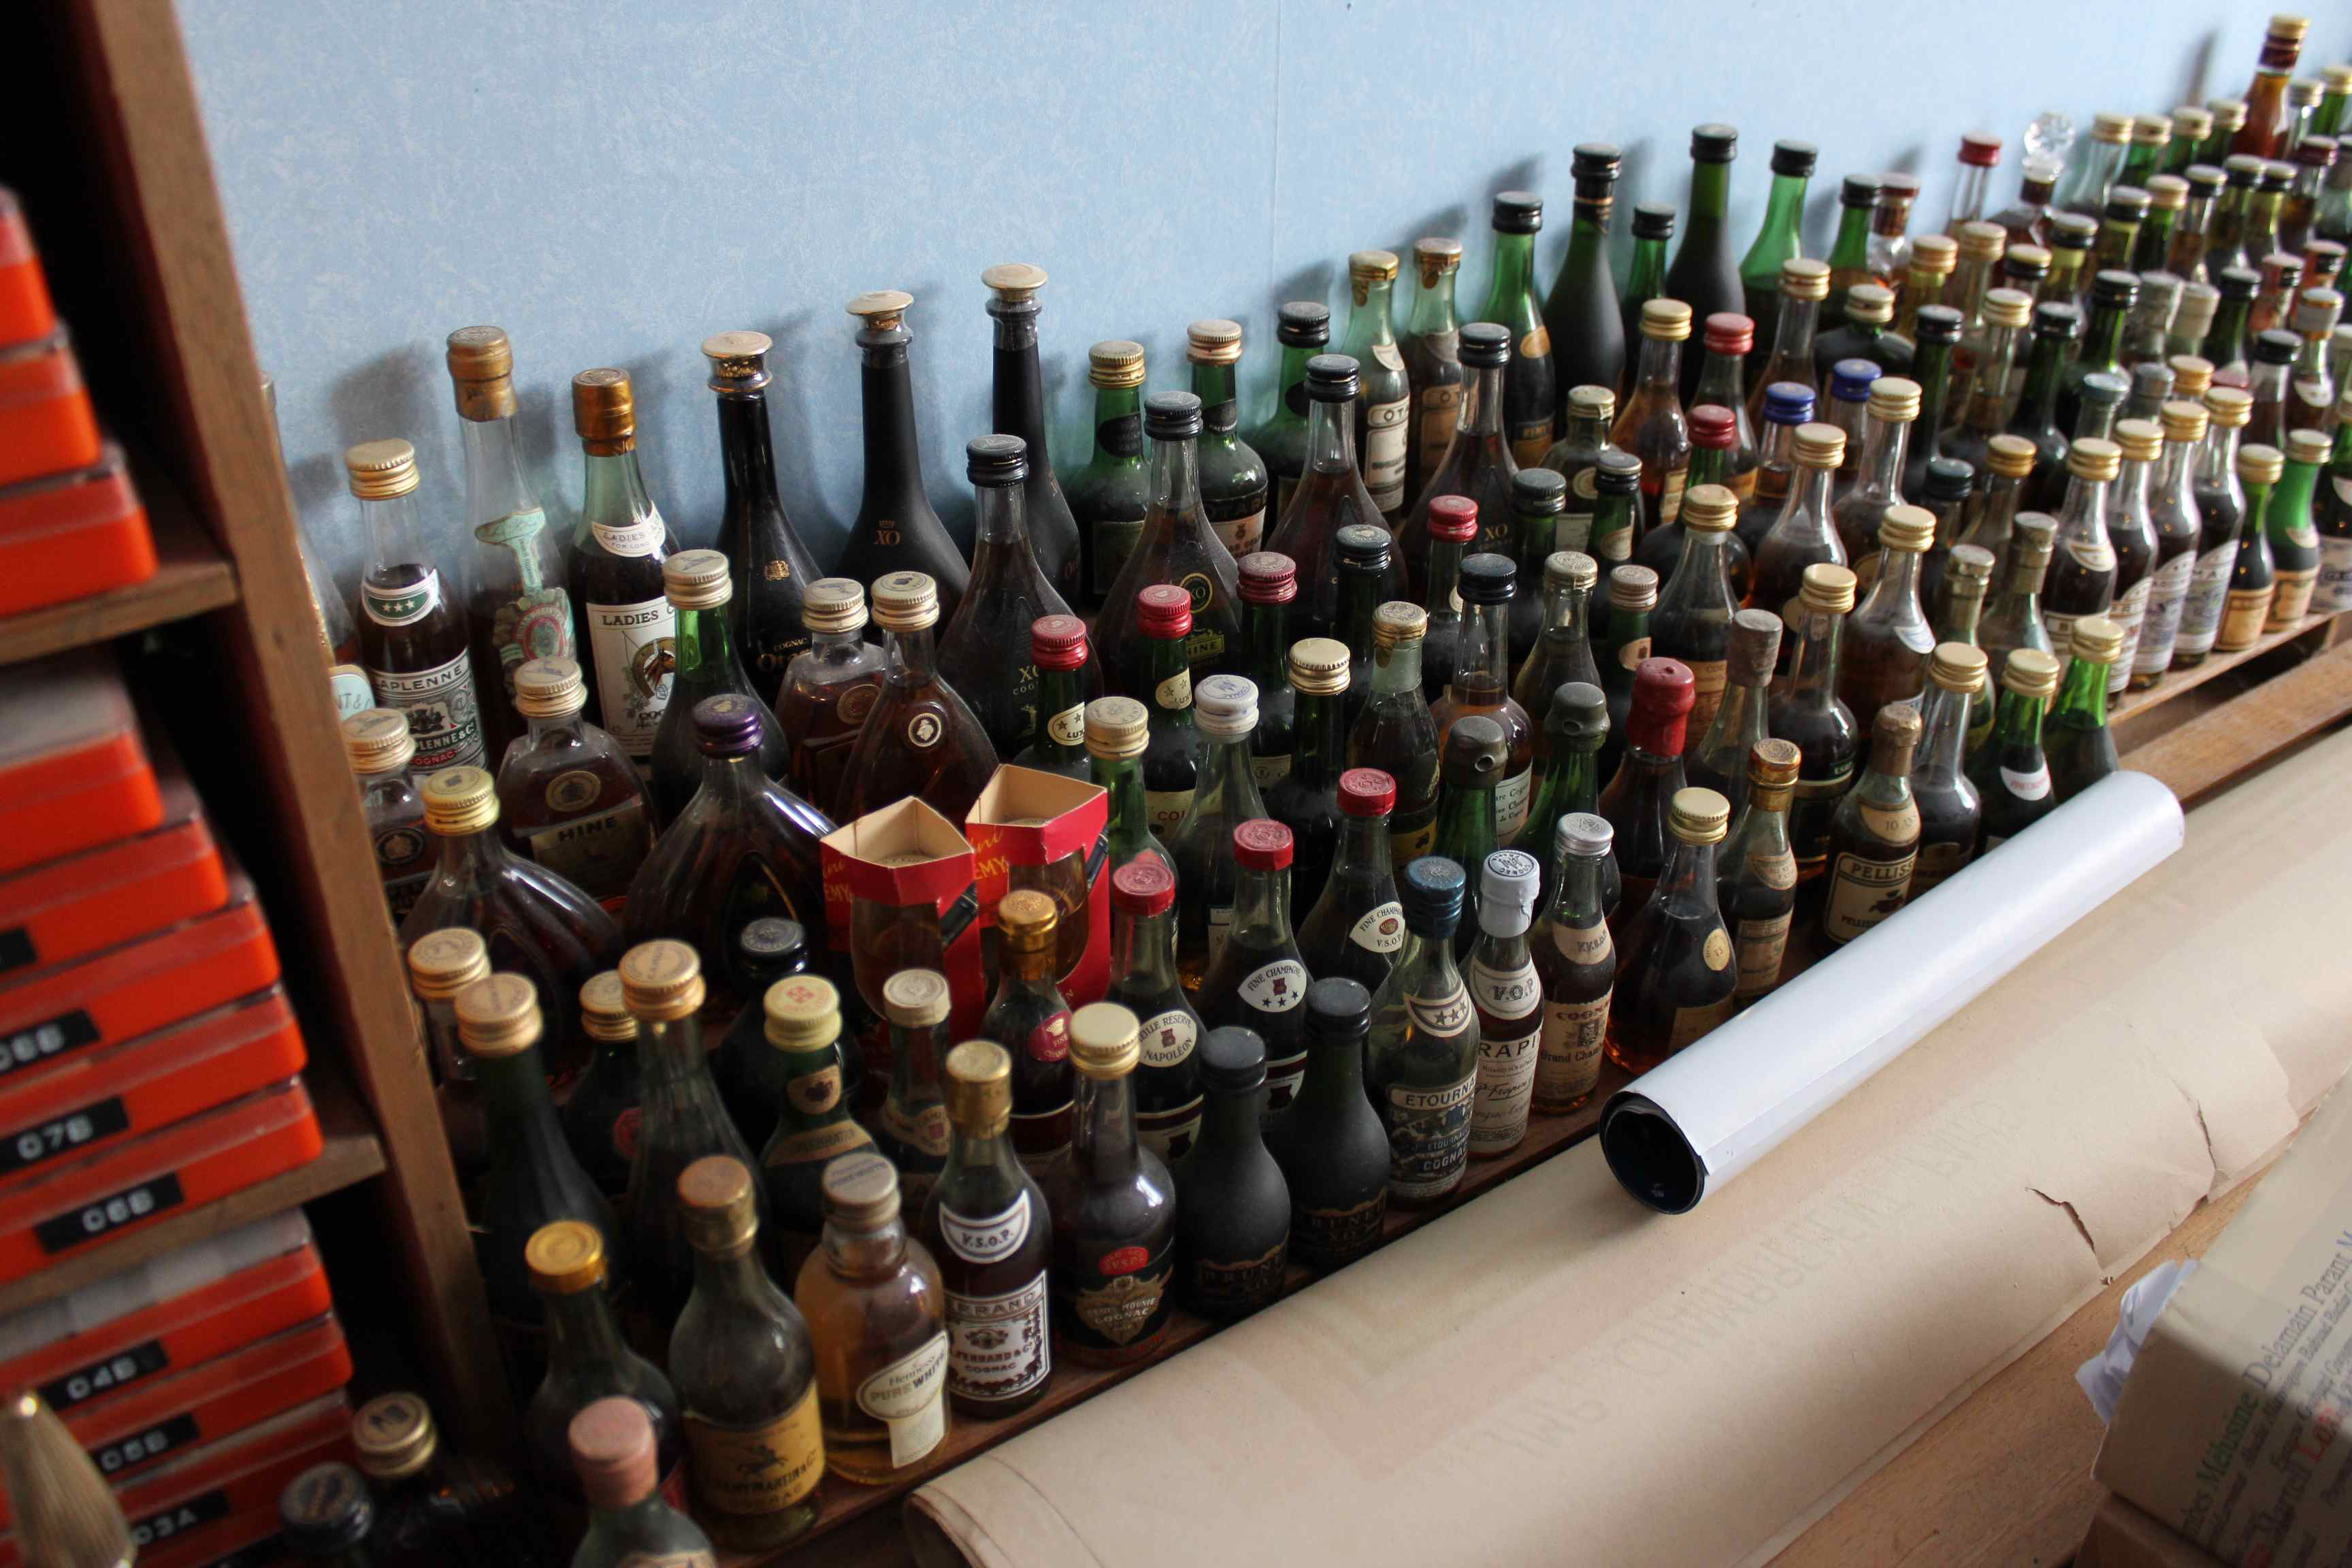 Gigantic mini bottle collection of cognacs